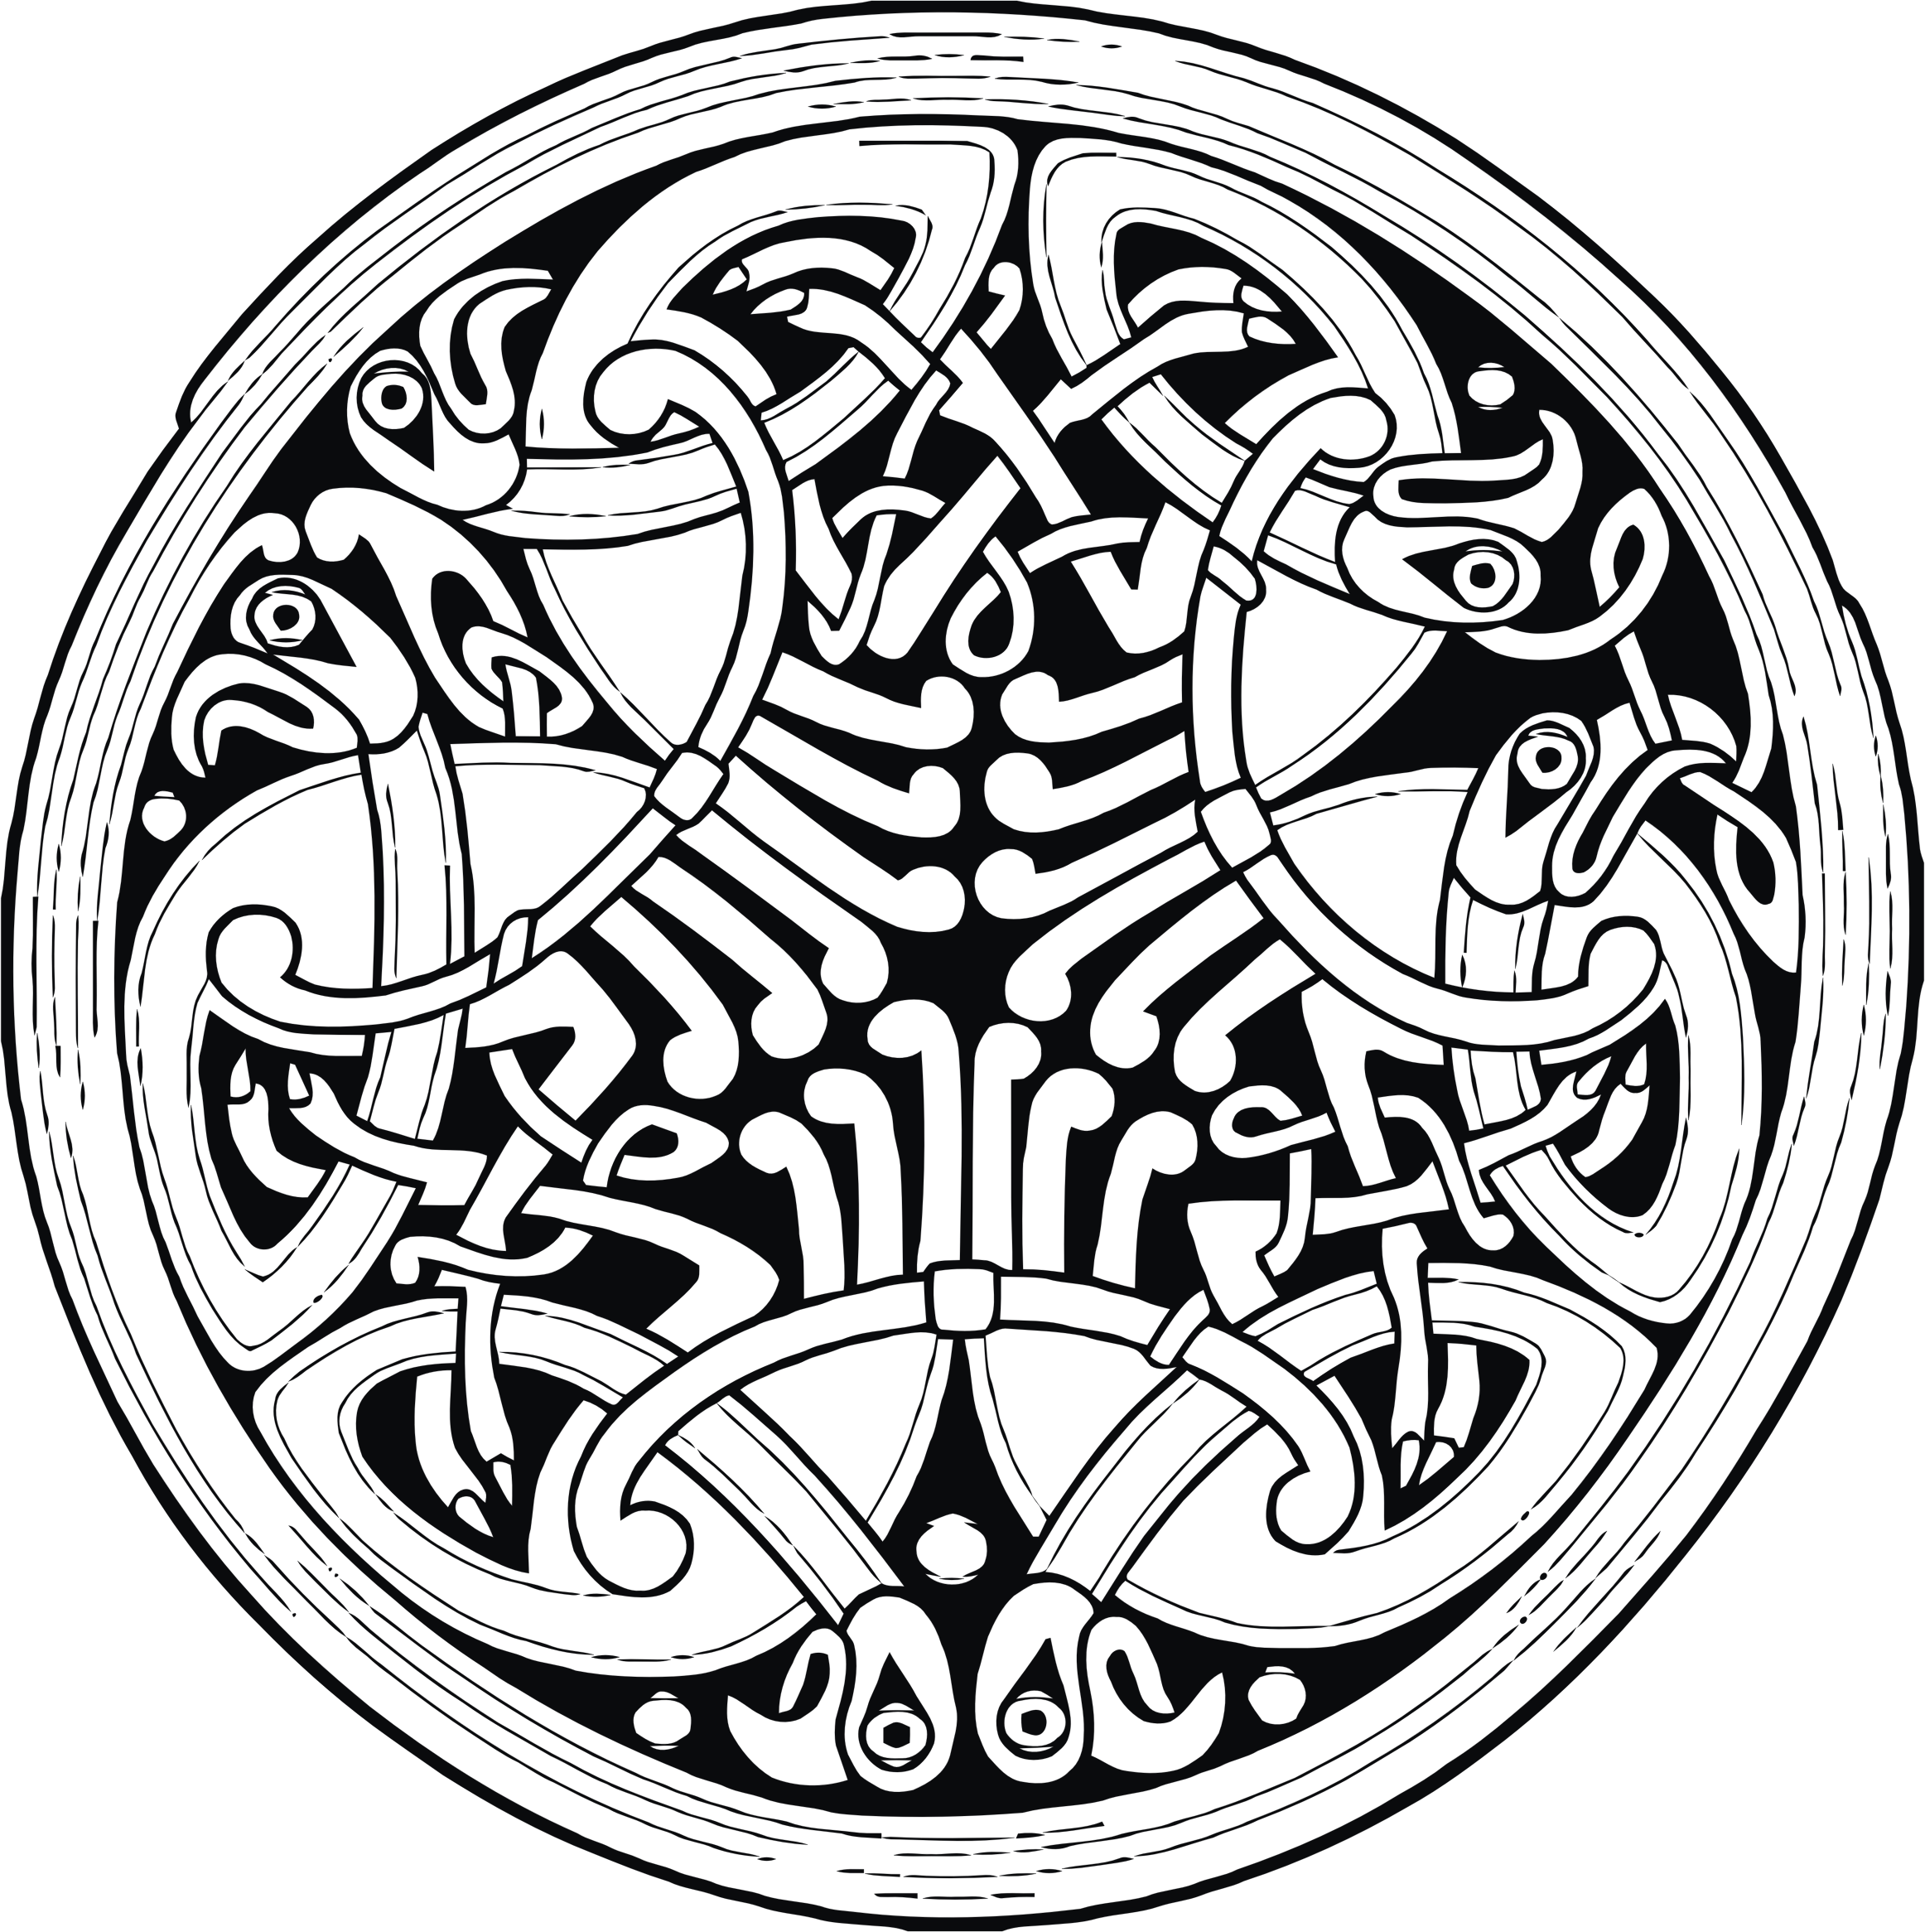 Celtic Ornamental Circle by GDJ